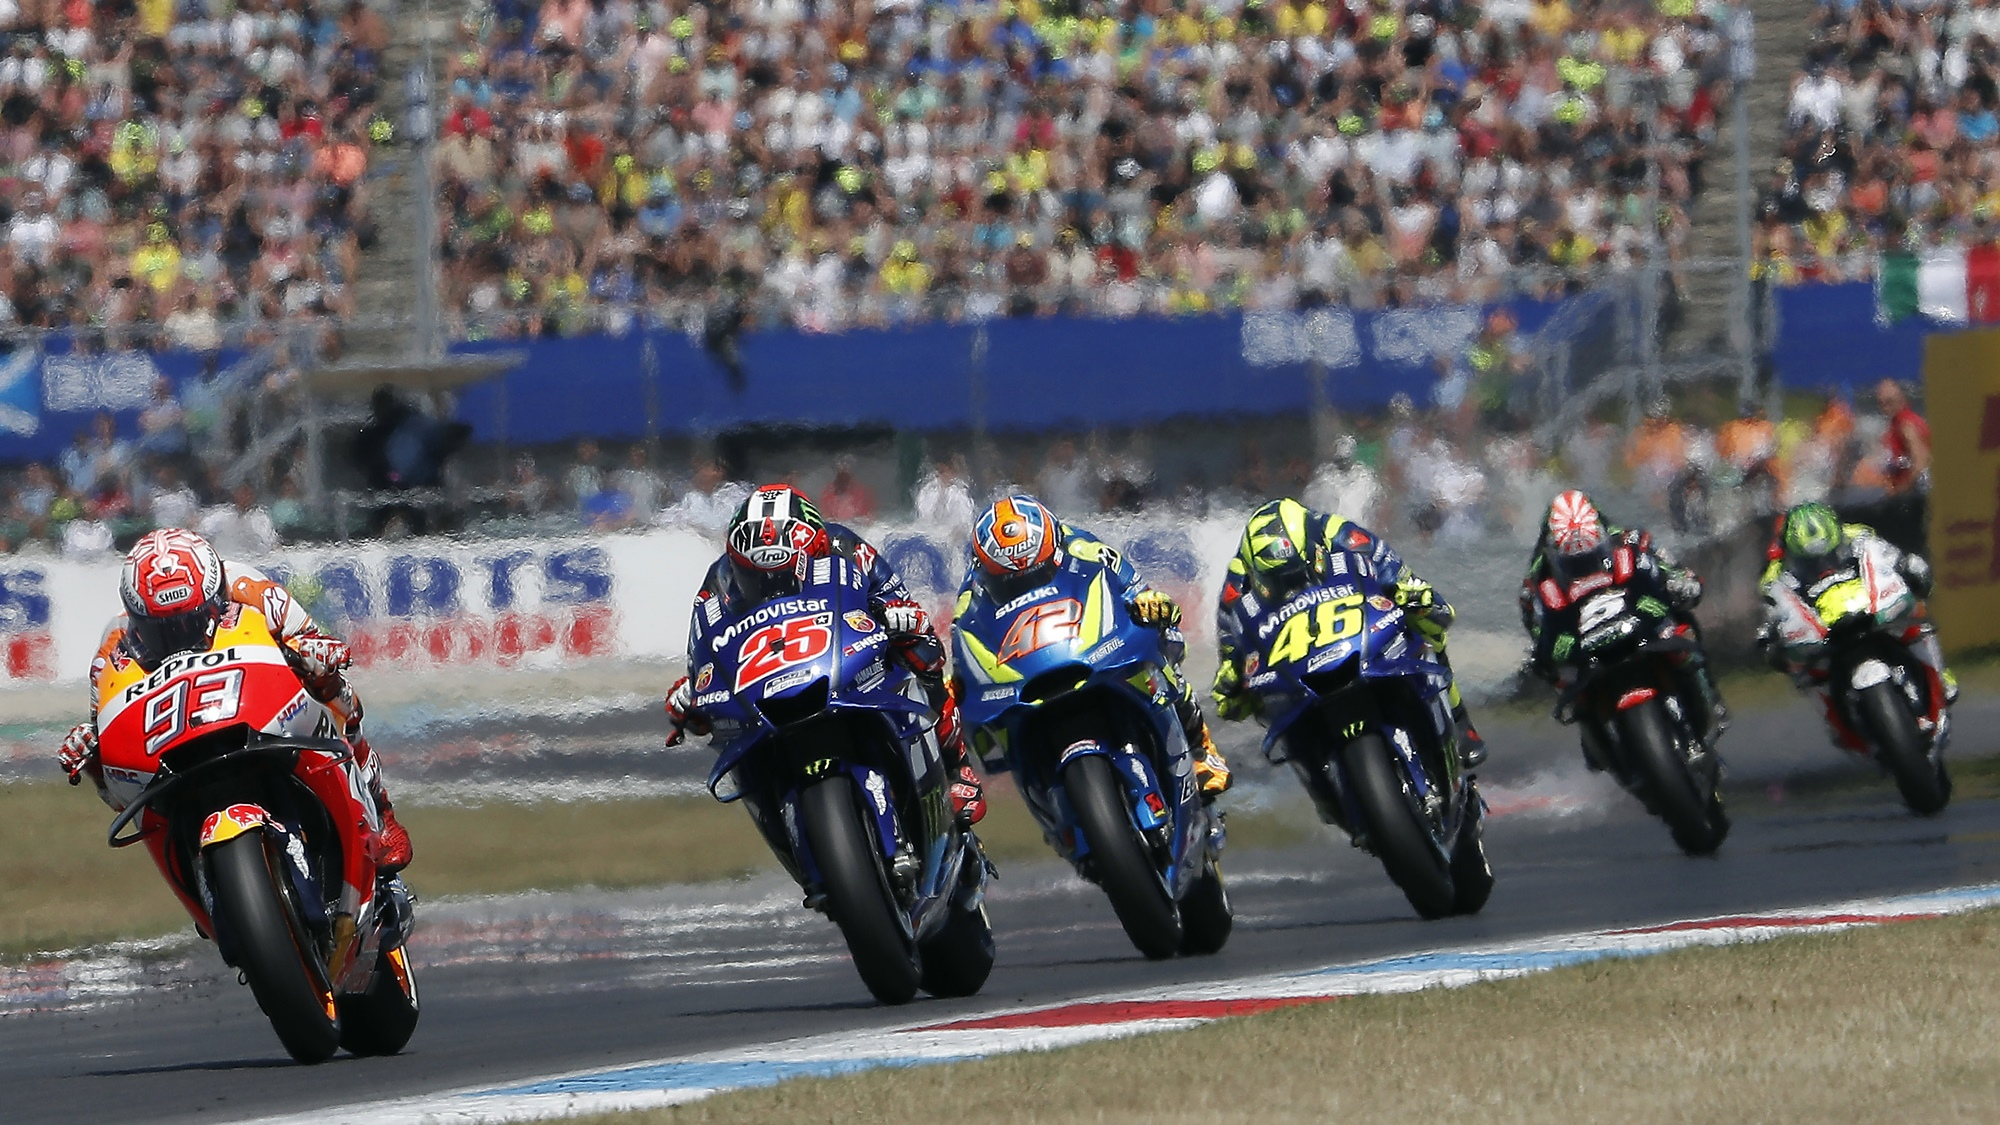 Marquez, Rins and Vinales on podium at Assen MotoGP